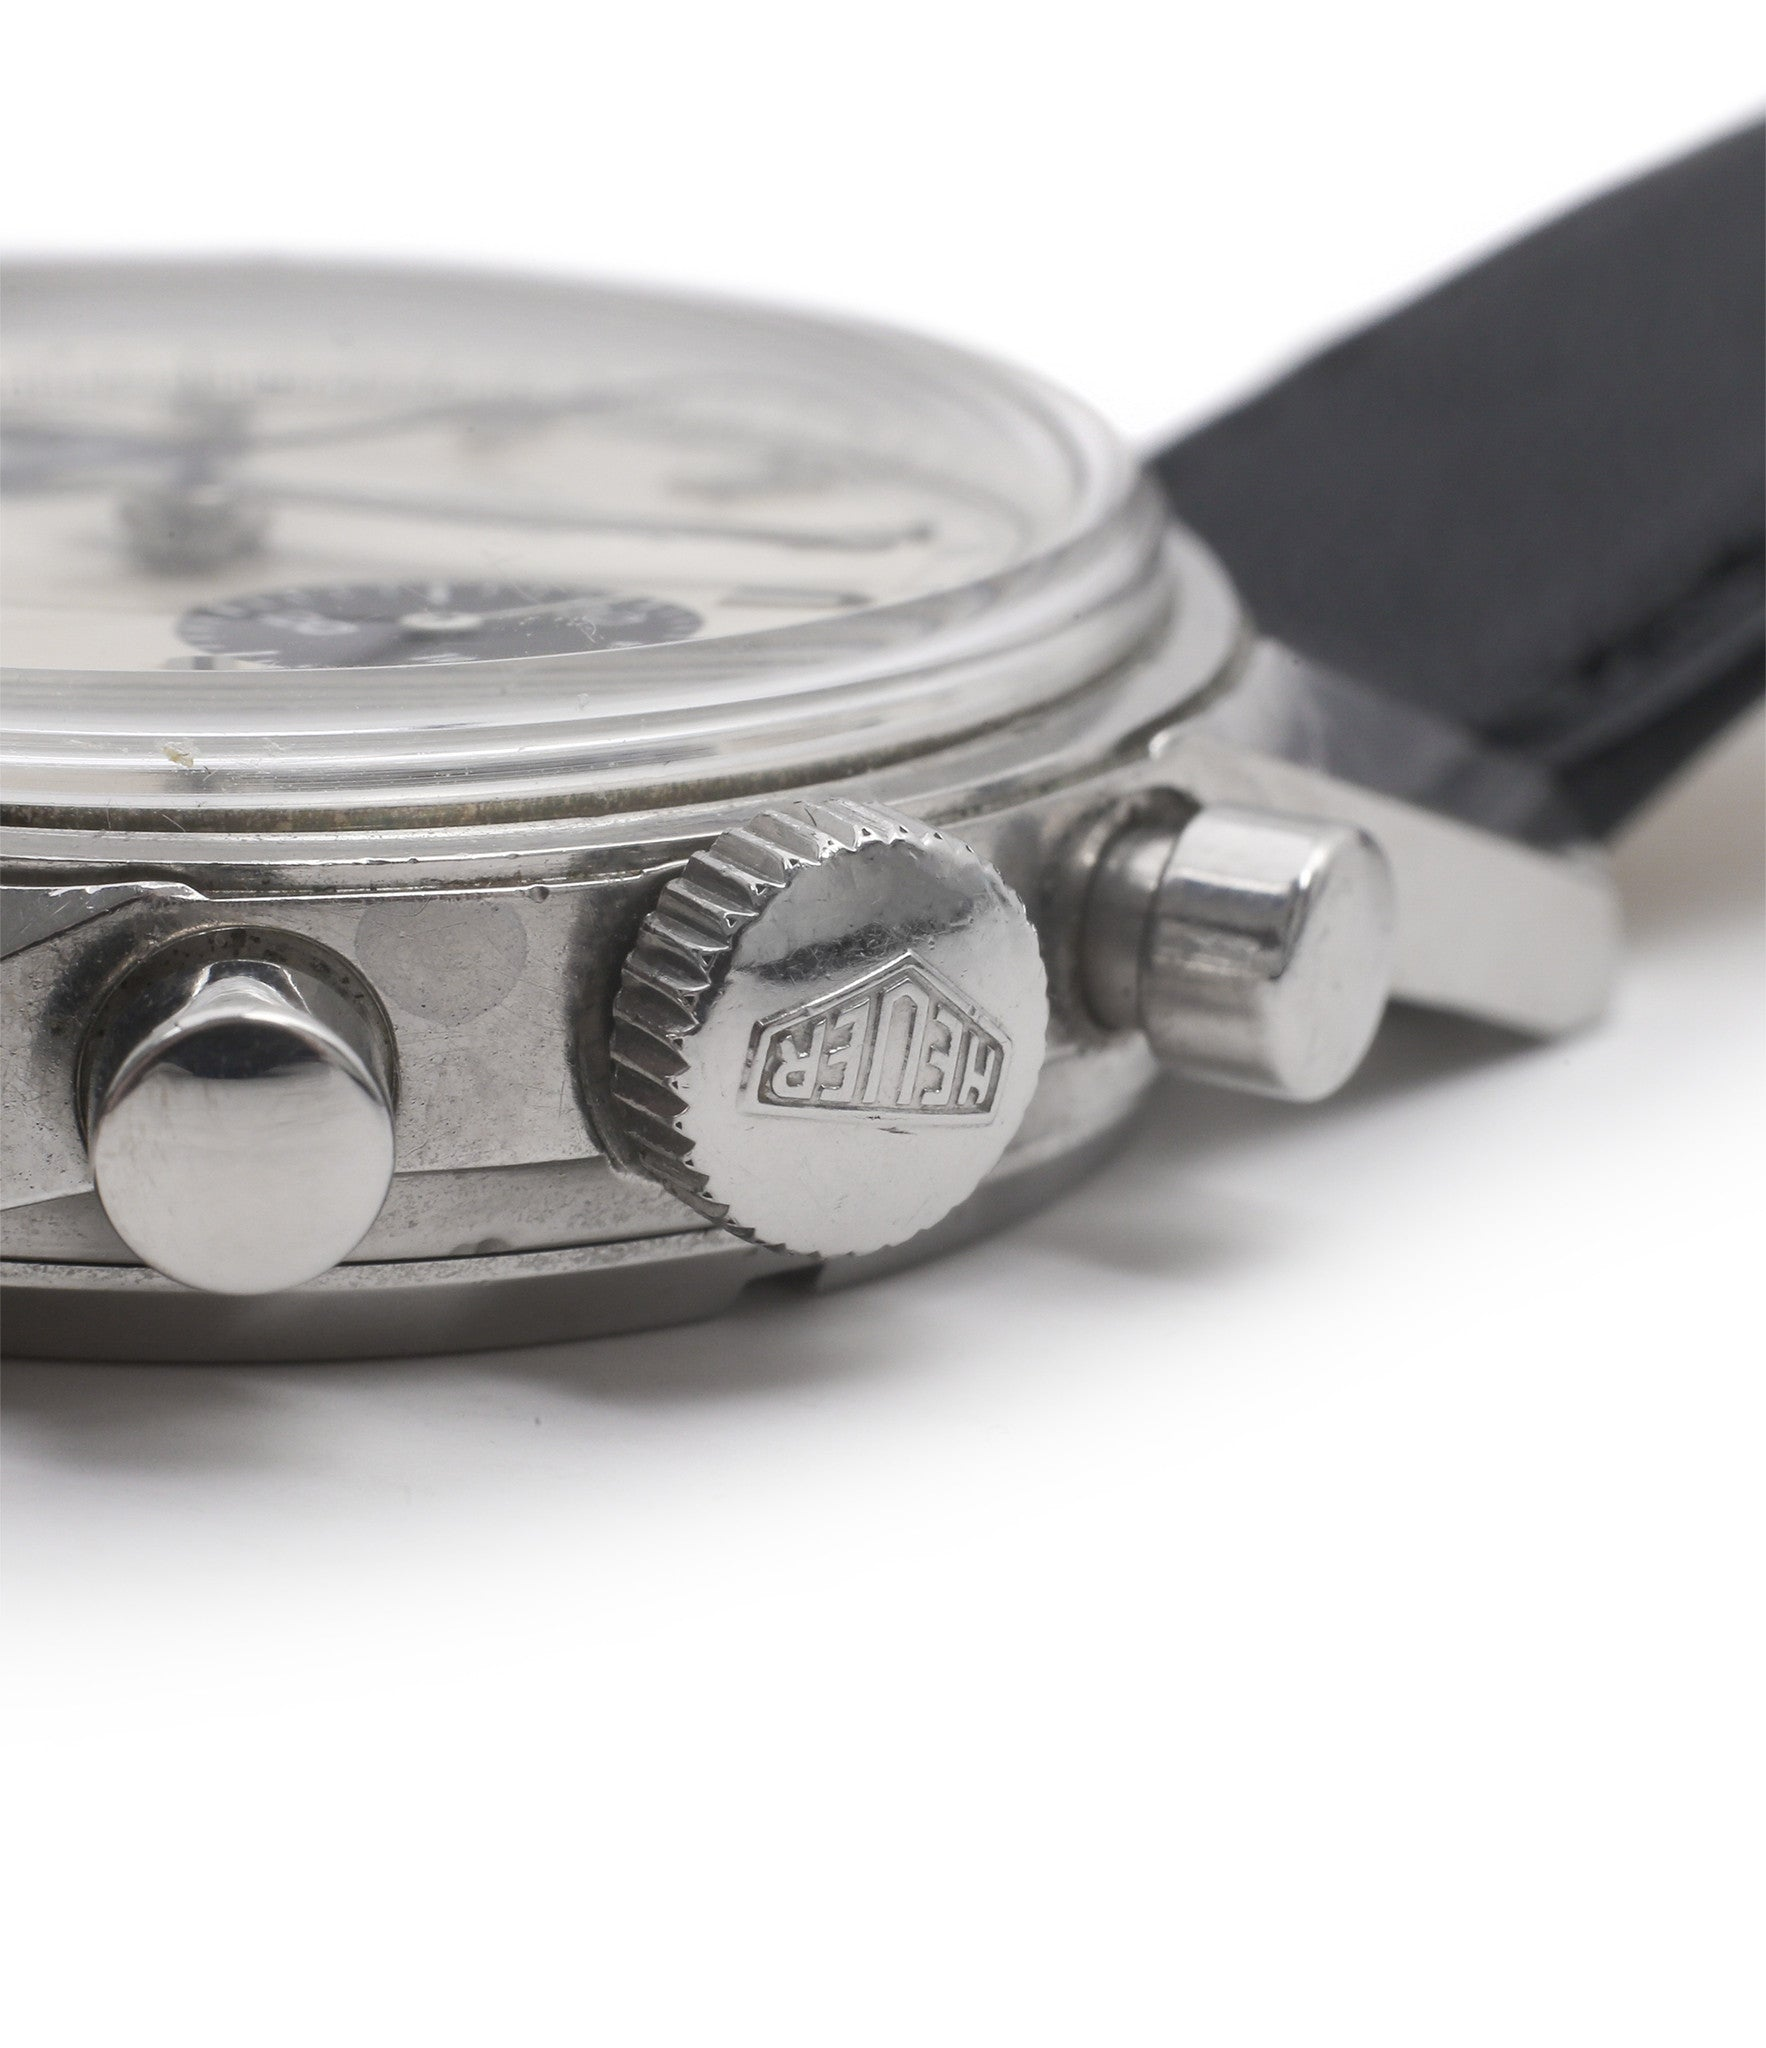 original crown Heuer Carrera 7753SND vintage sports watch panda dial online at A Collected Man